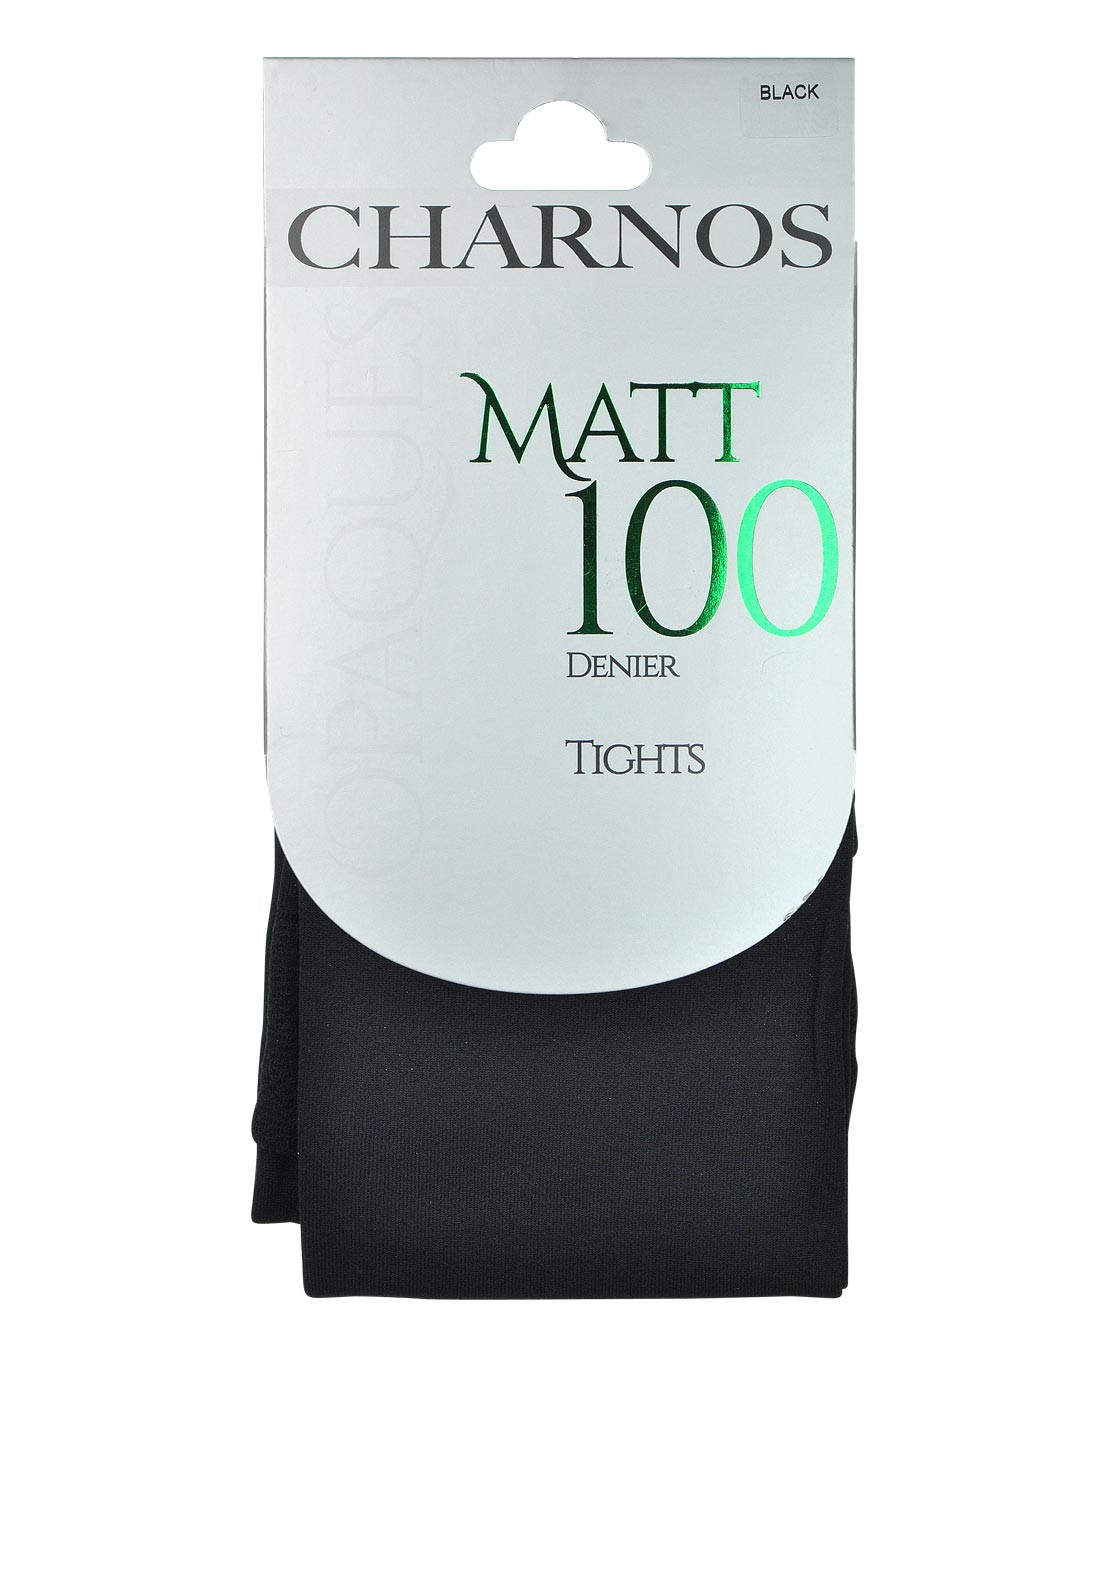 Charnos Opaques Matt 100 Denier Tights, Black